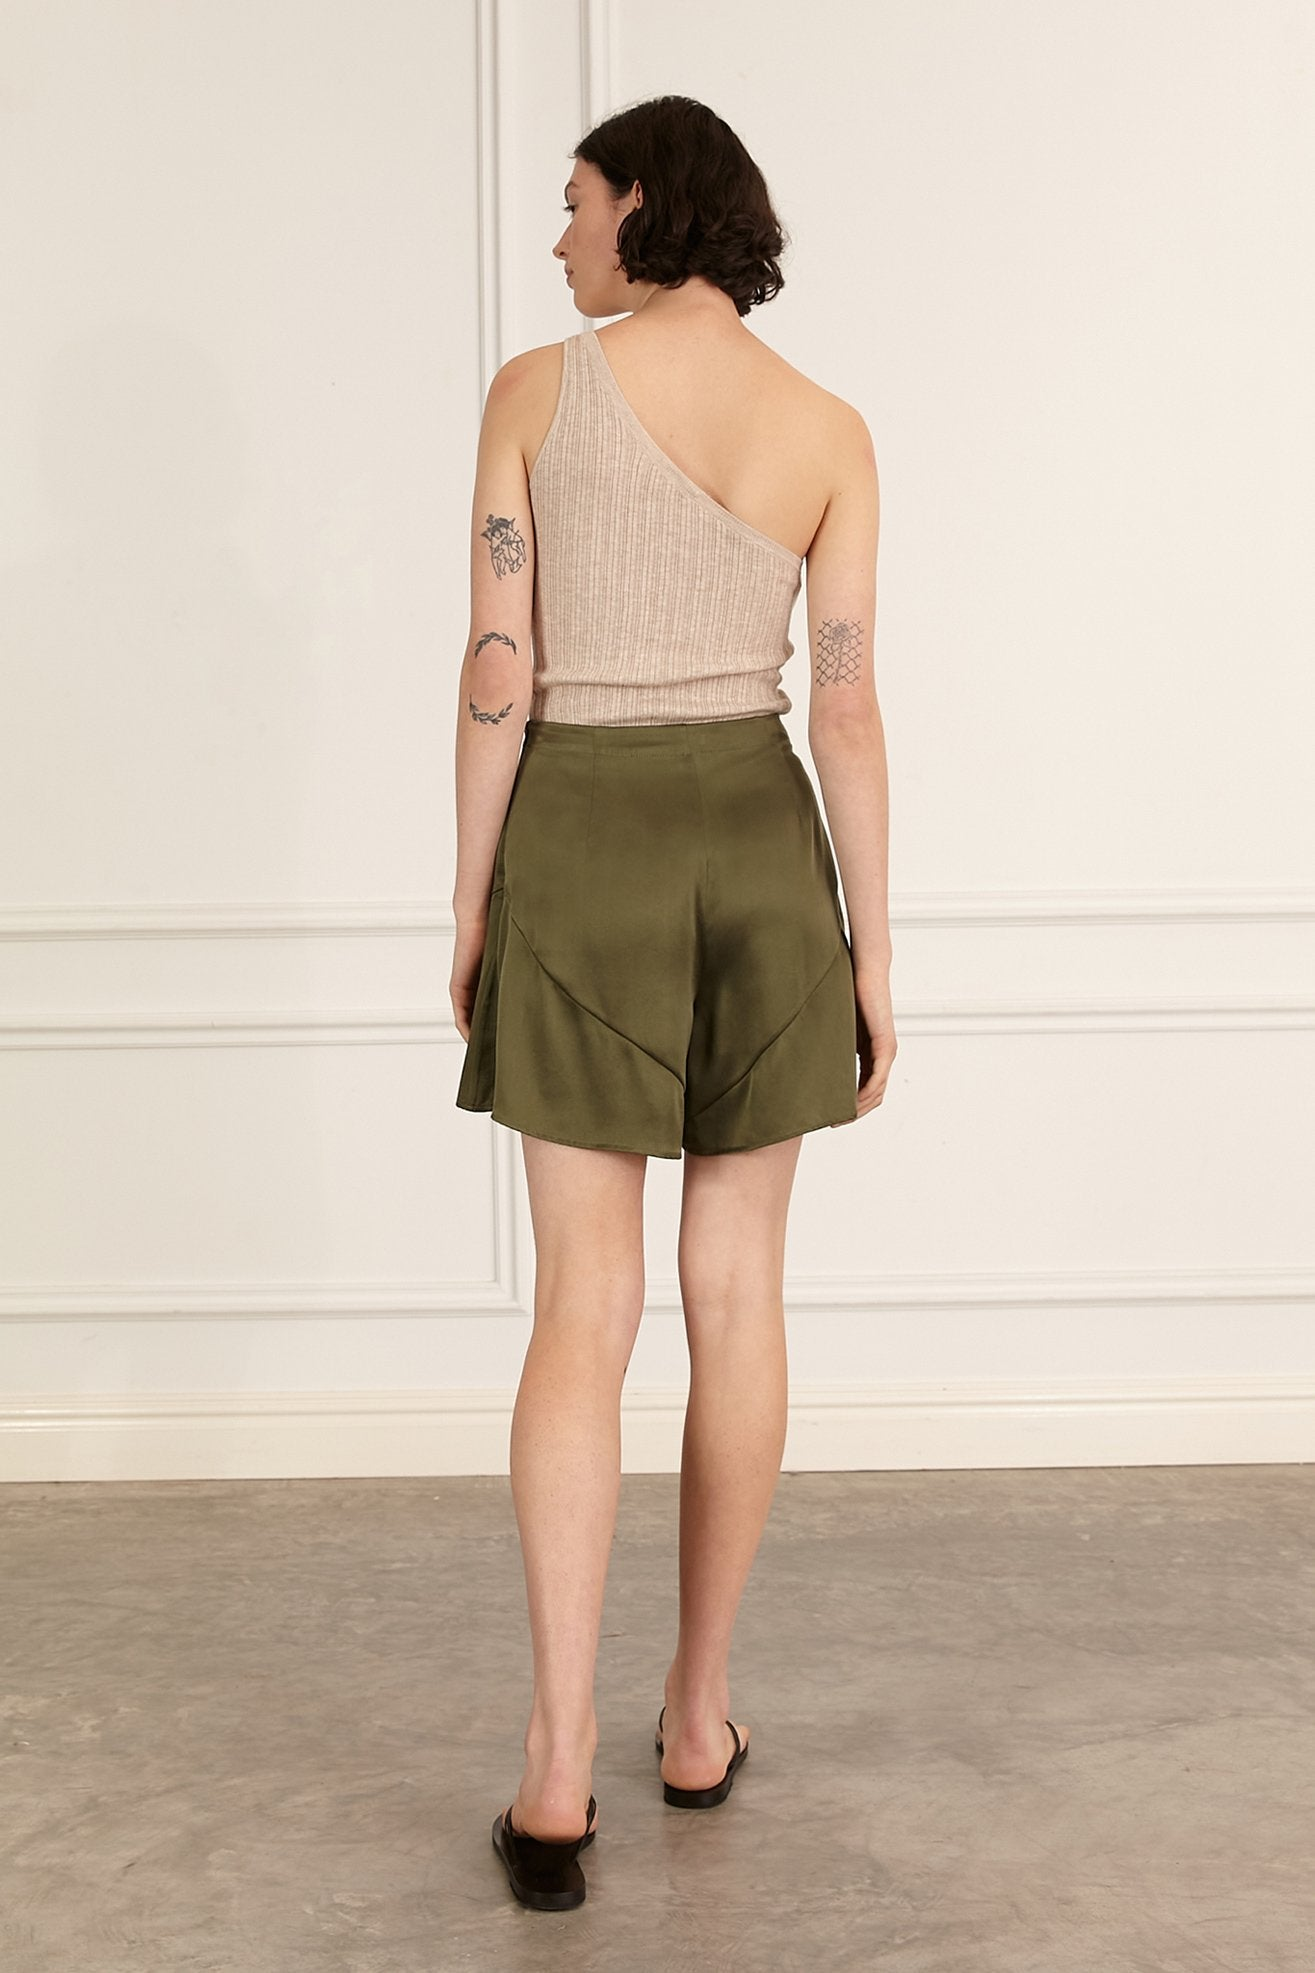 The Market Limited Womens Shorts Marle | Bettina Short - Khaki